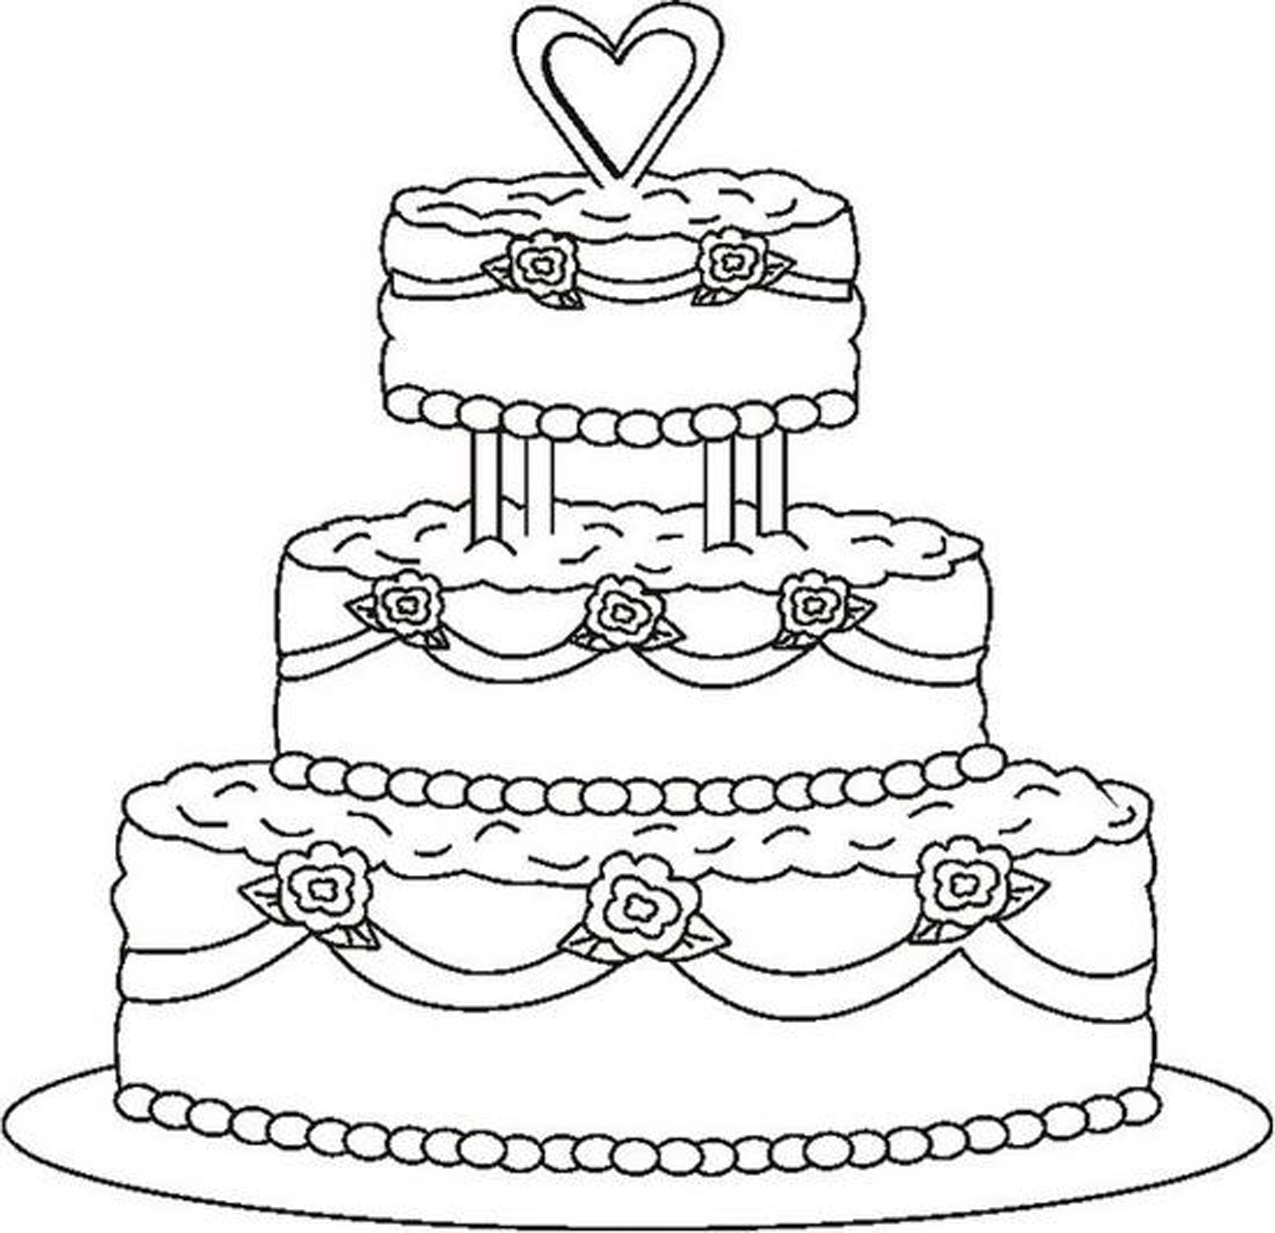 Cute Cake Coloring Pages